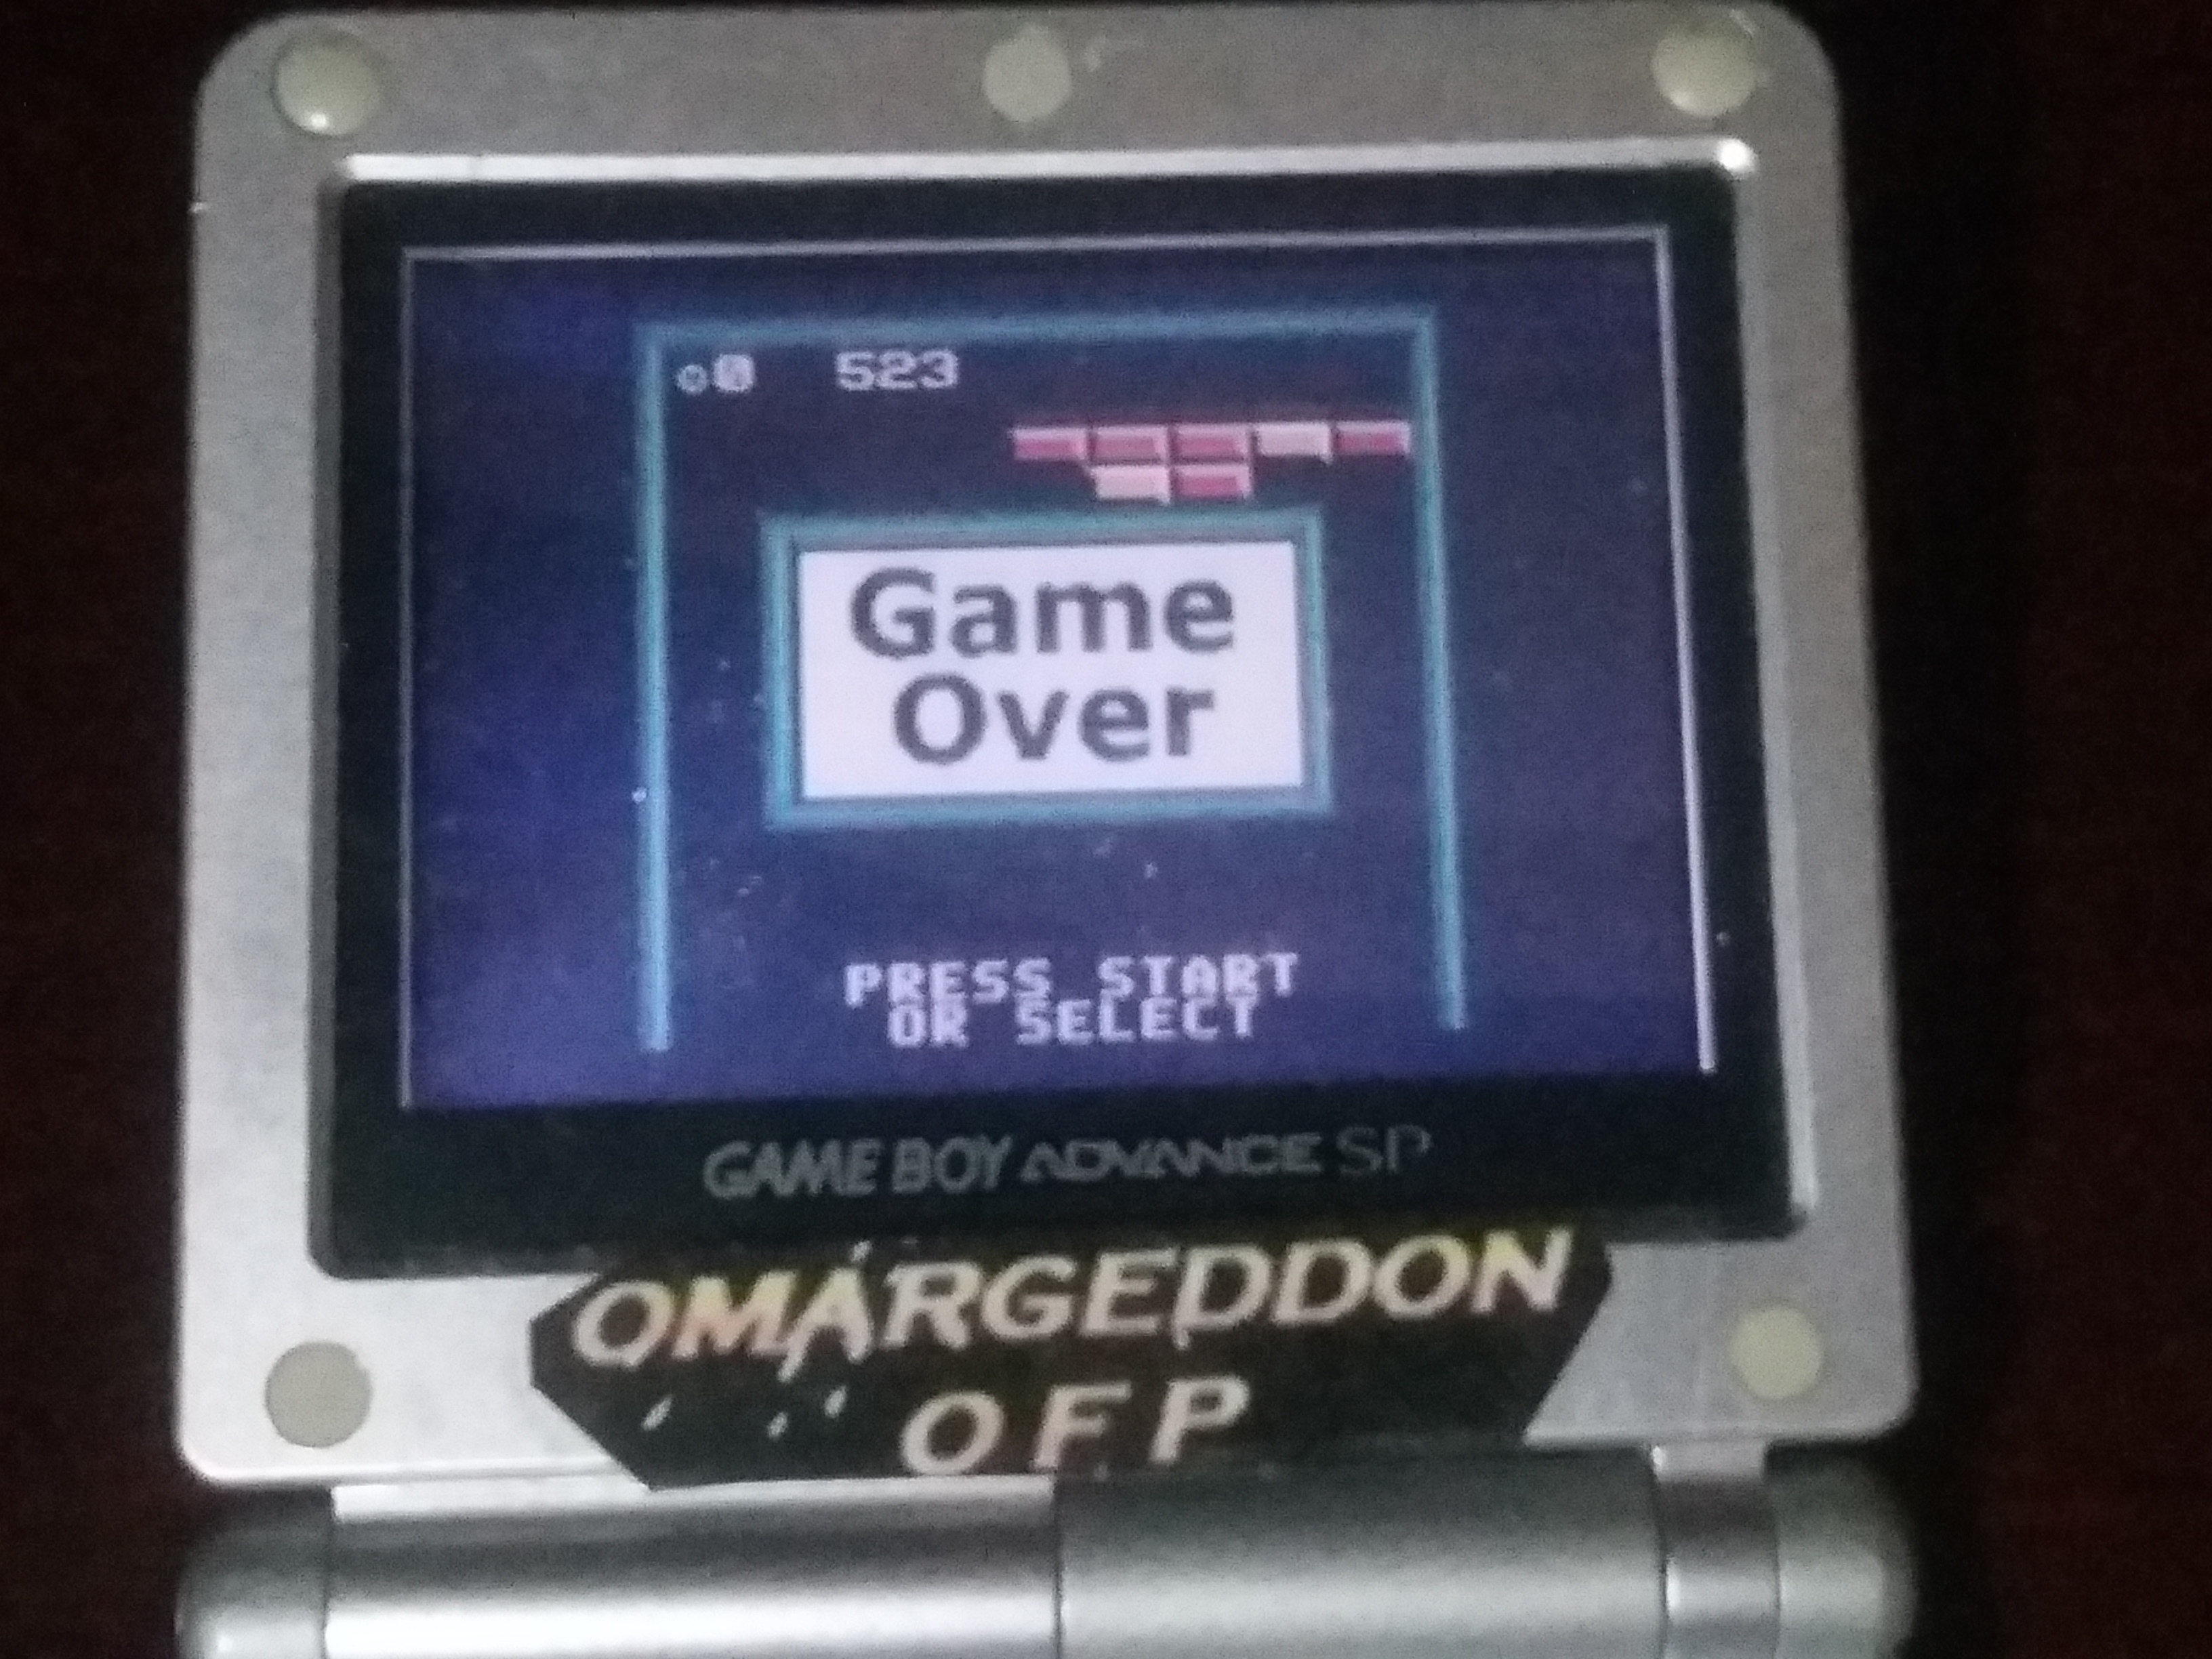 omargeddon: Super Breakout: Regular (Game Boy Color) 523 points on 2018-03-20 02:06:49